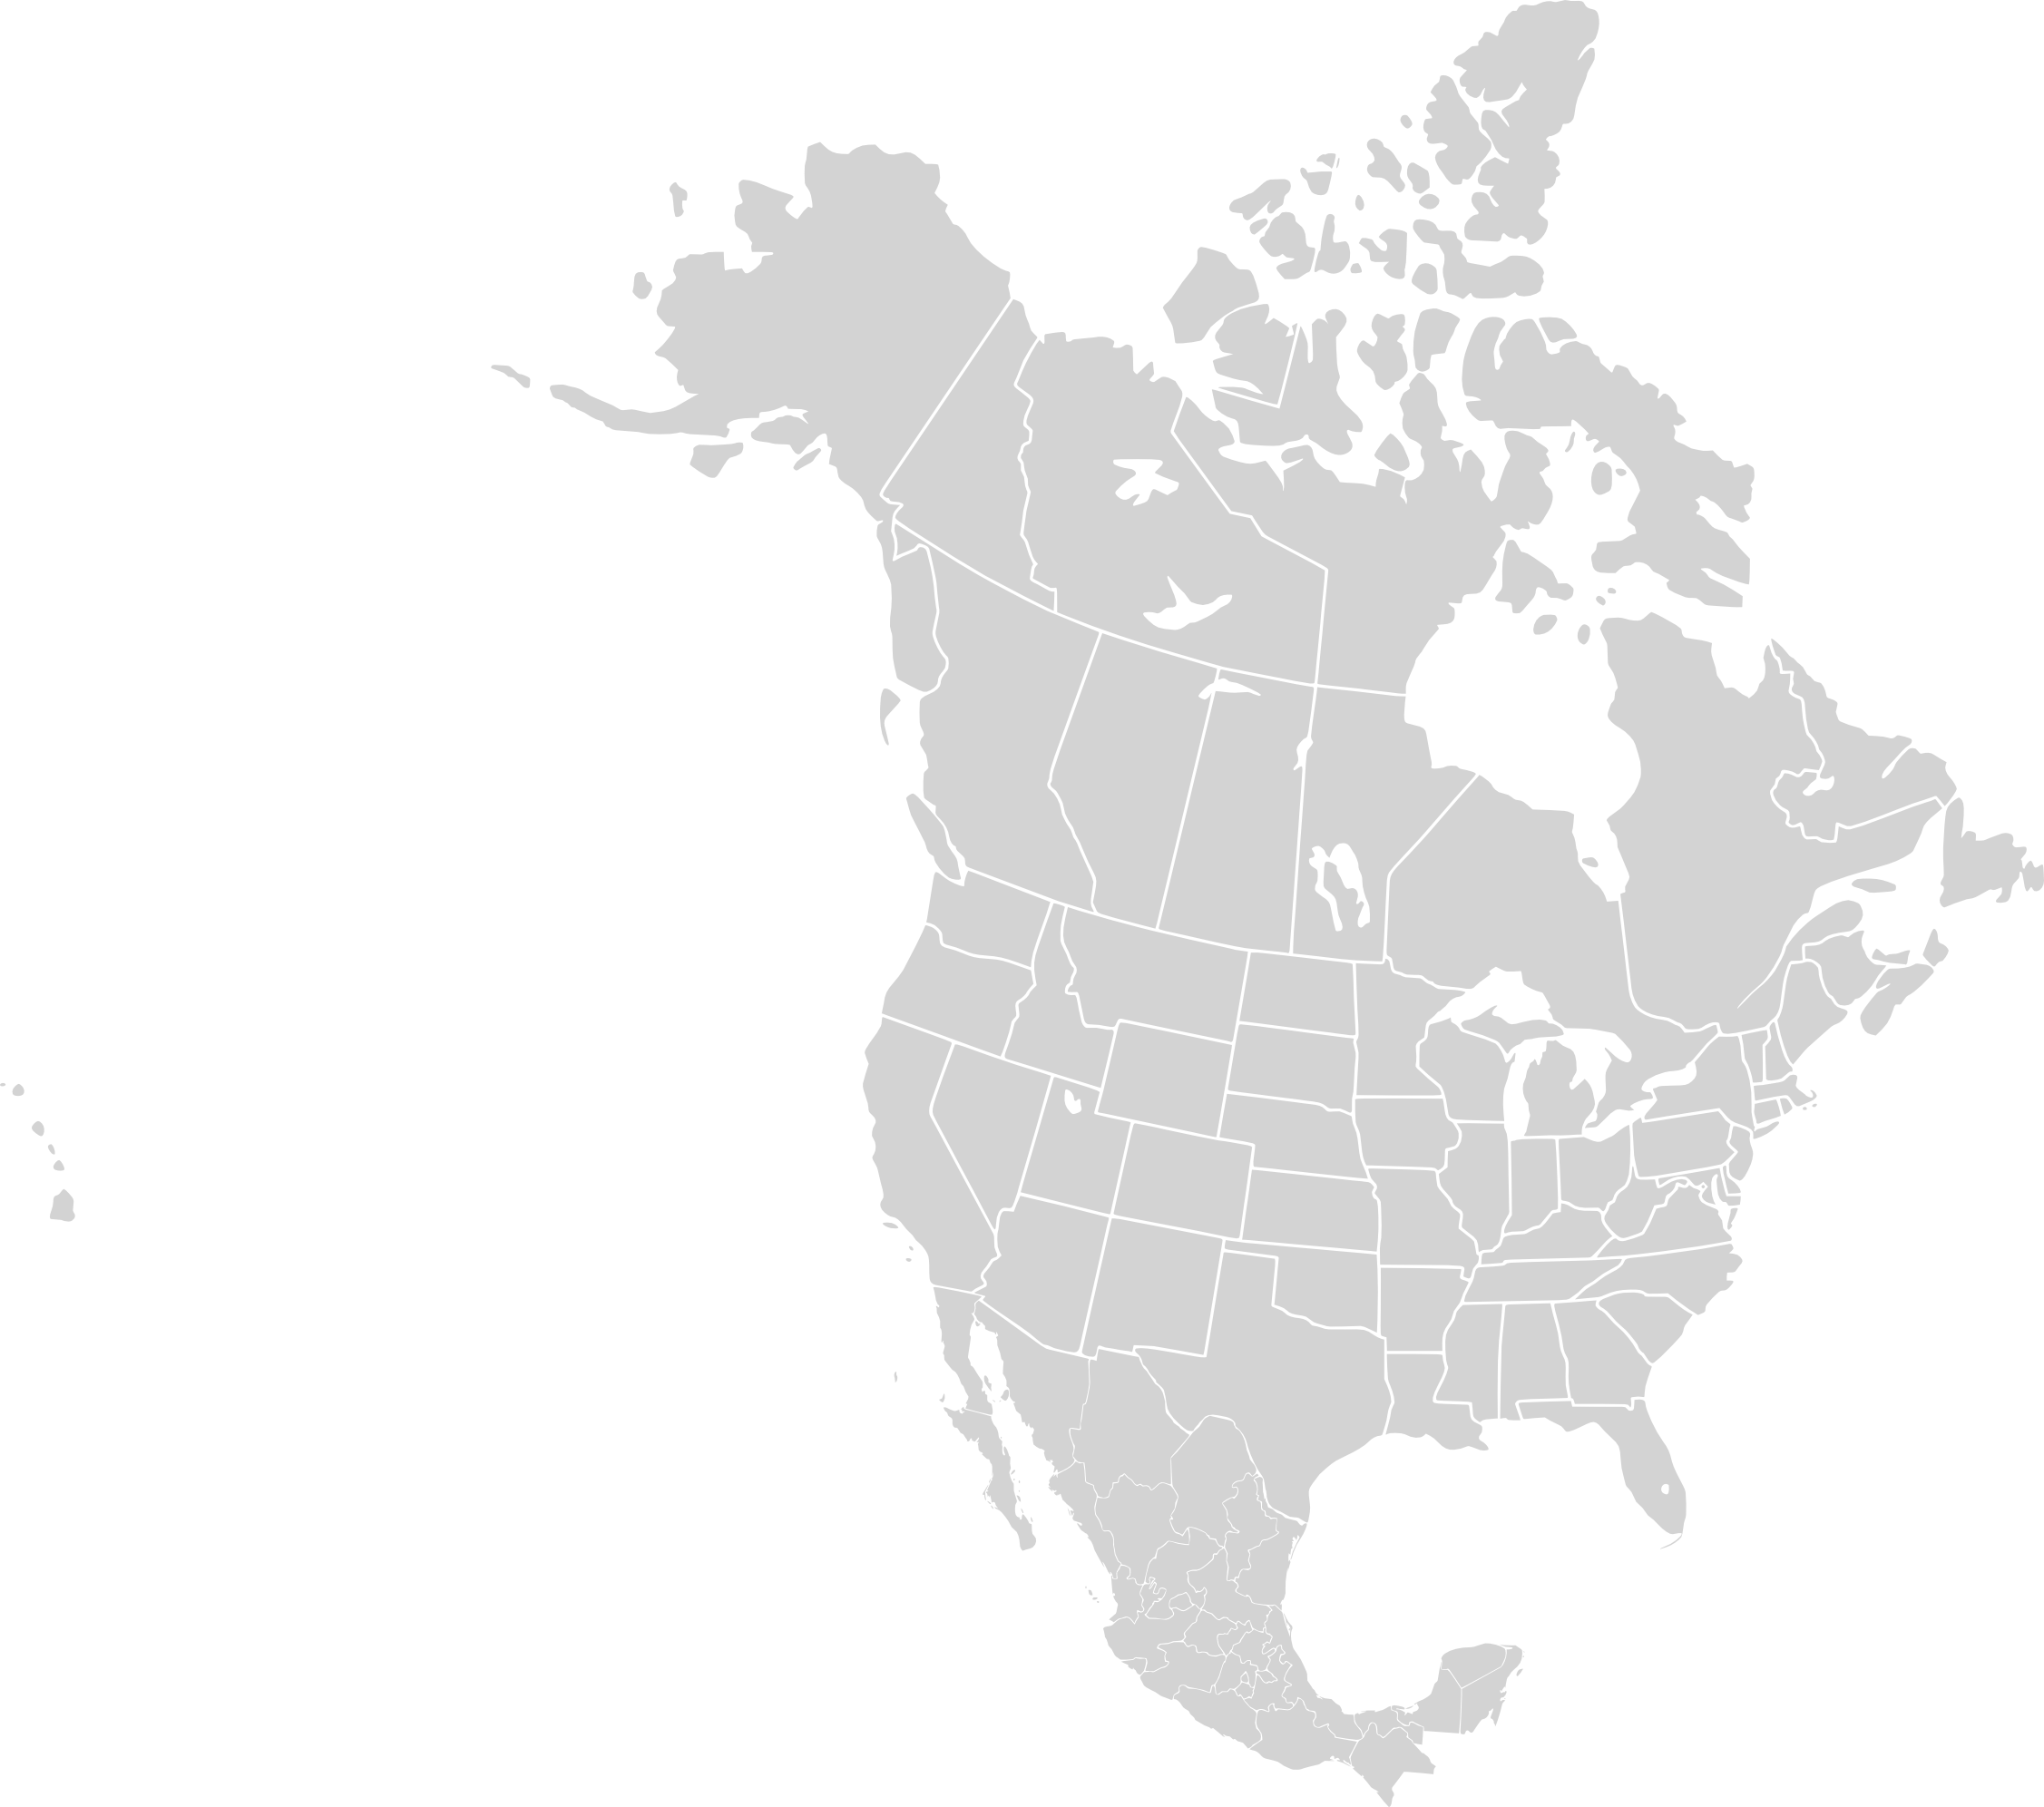 North America Map Png - File:North america blank range map.png